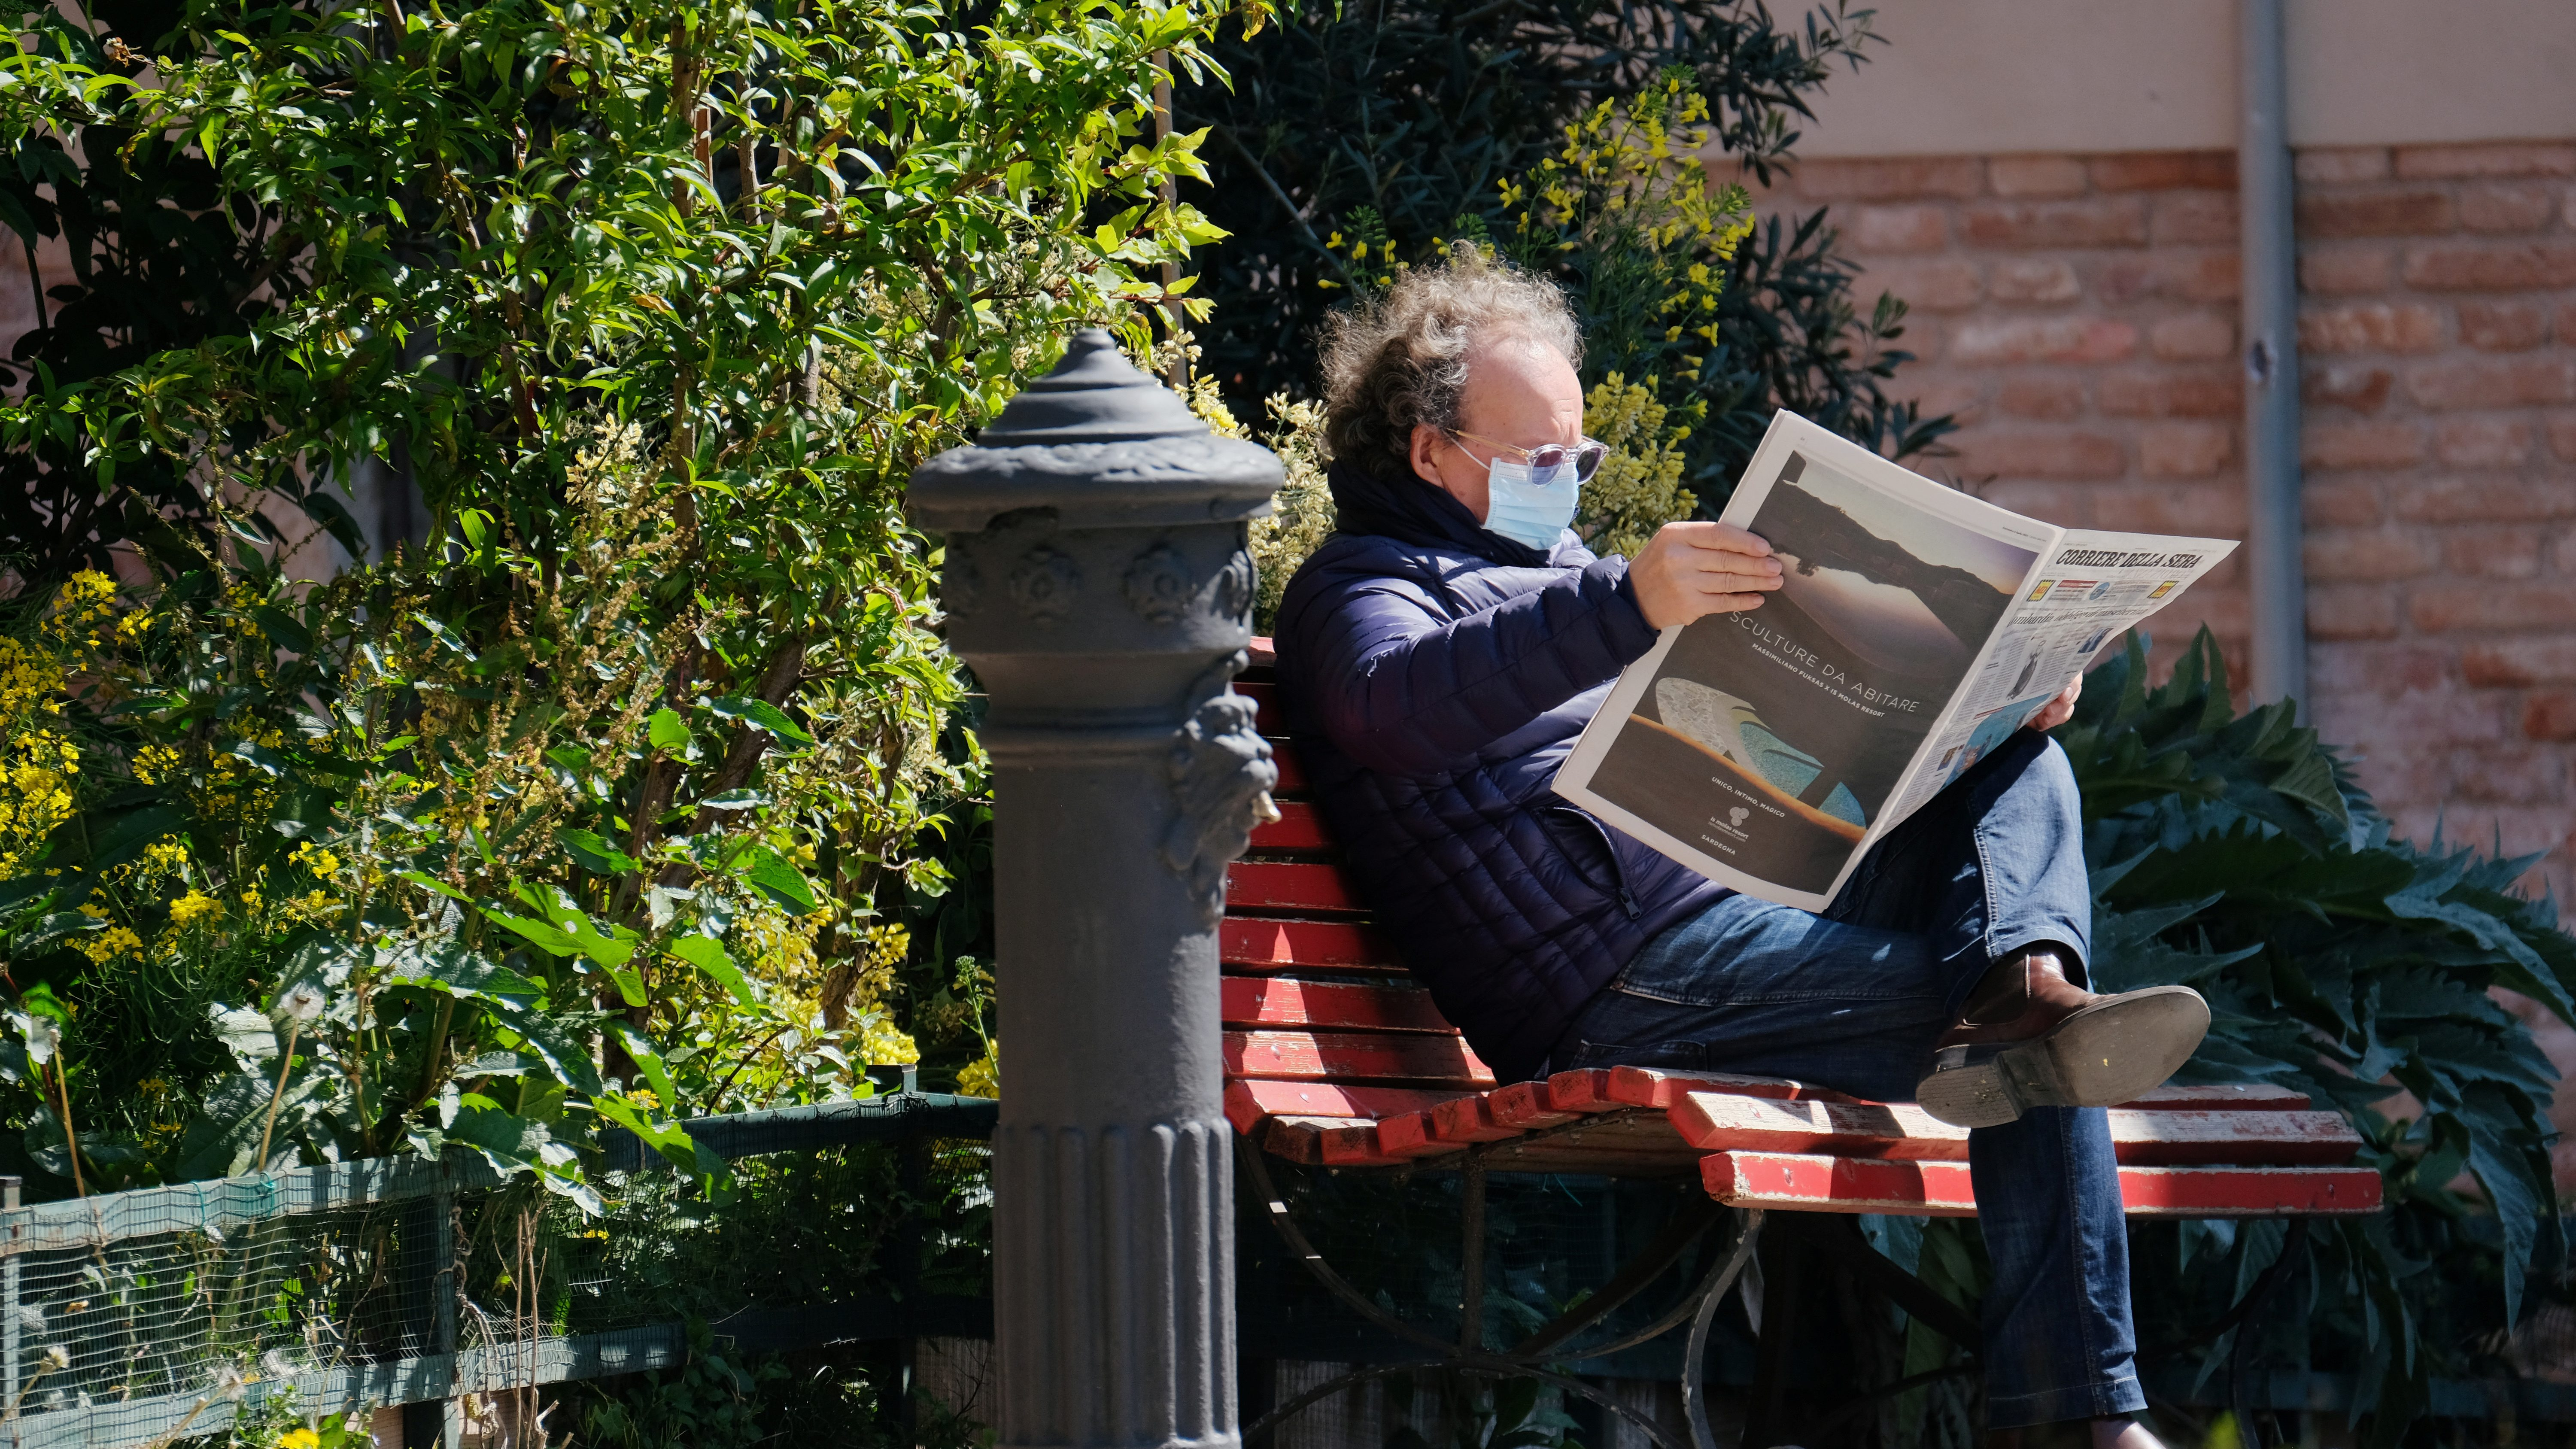 A man with a mask reads a newspaper outside.